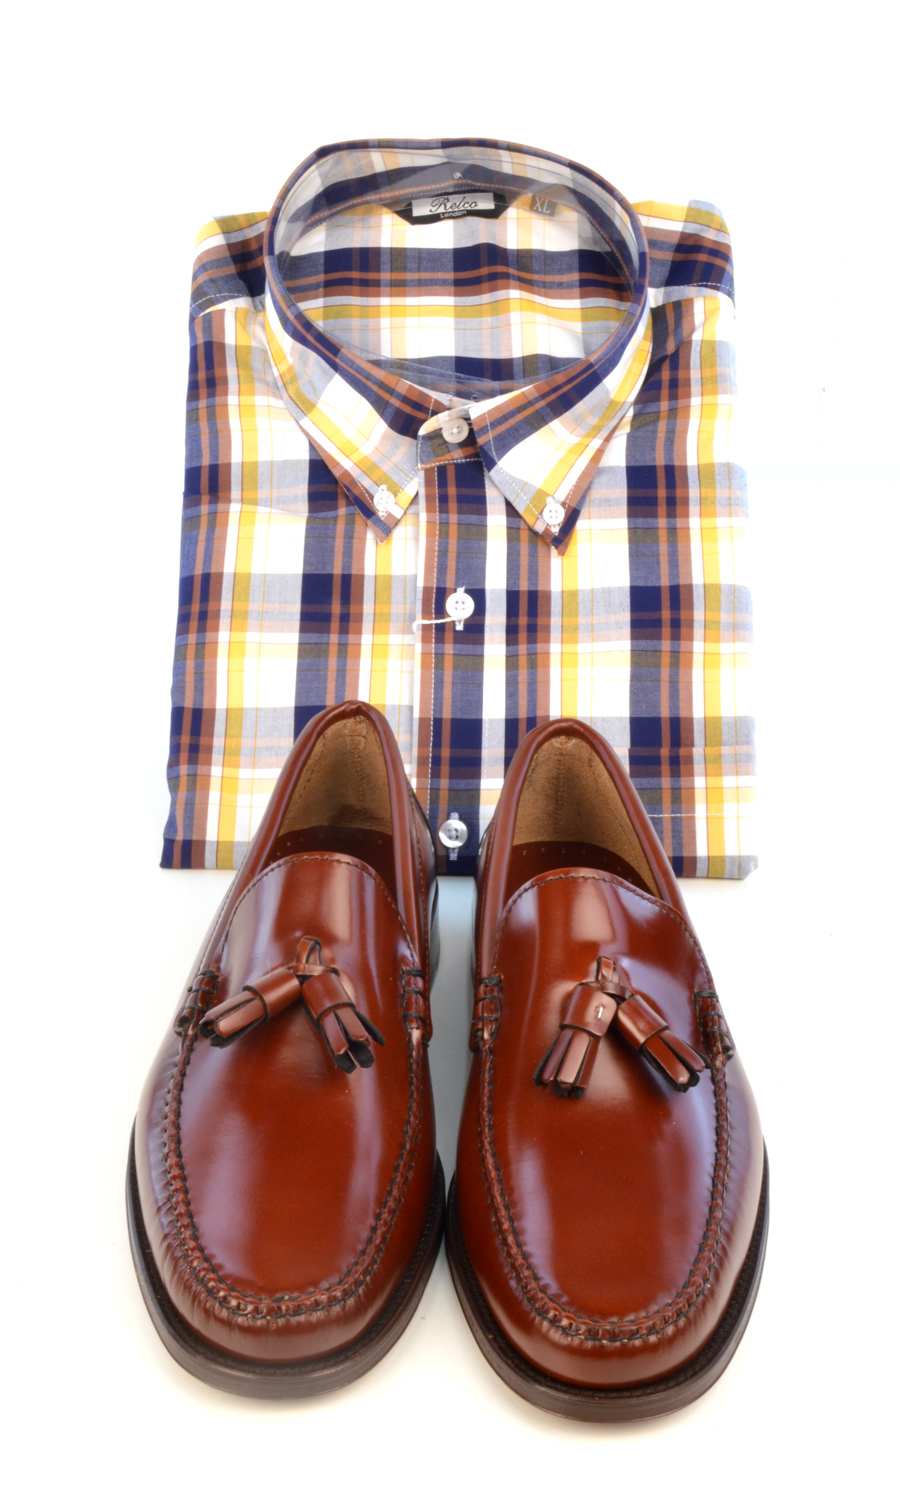 modshoes-chestnut-loafers-with-cgheck-hisrt